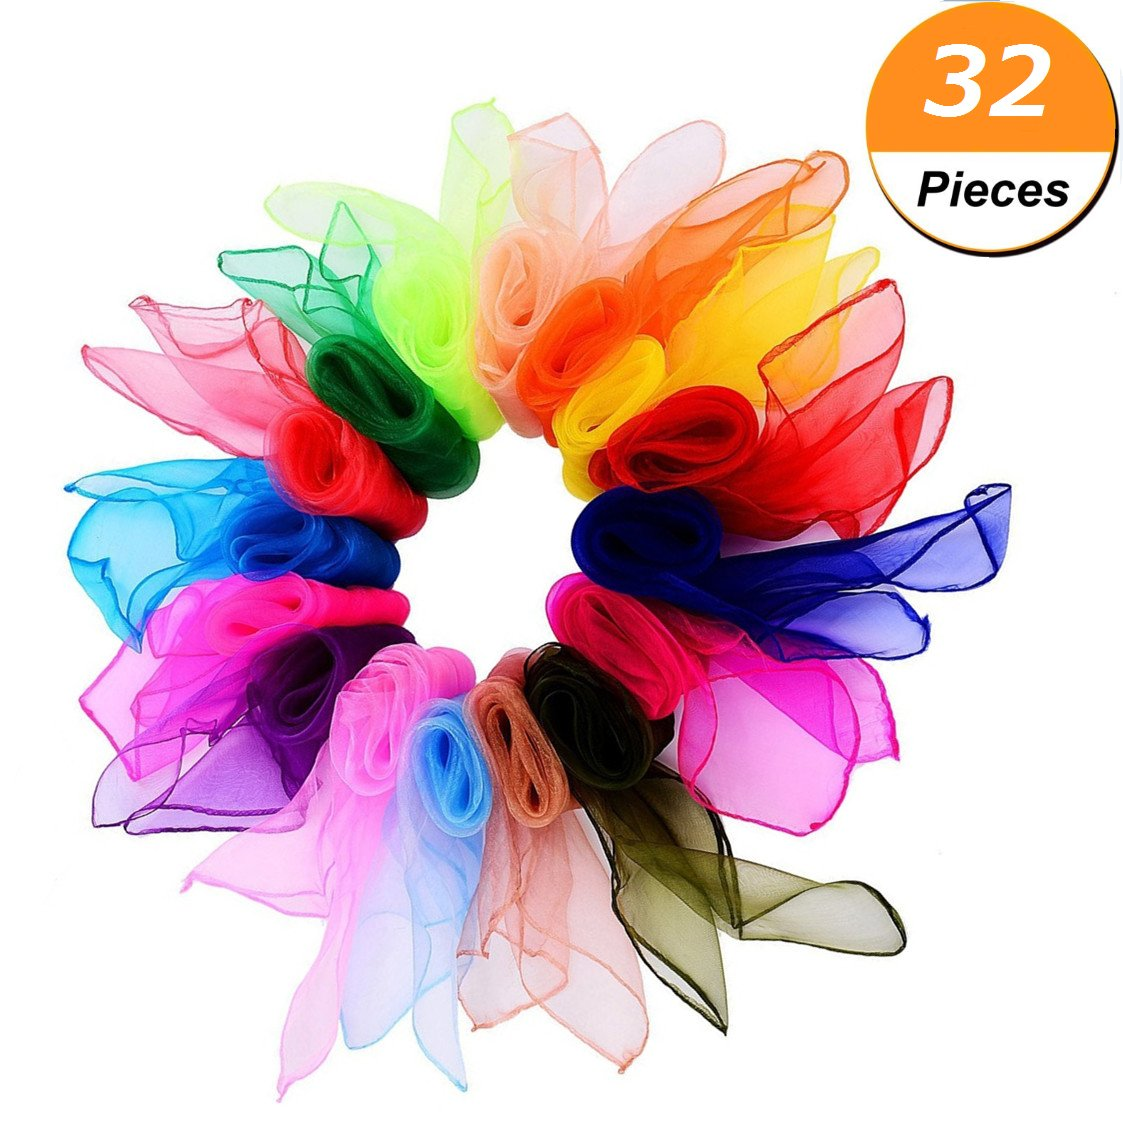 ALIKSO Dance Scarves 32pcs Rhythm Scarves Square Dance Scarf Juggling Scarf Magic Scarves for Kids 24 by 24 Inches 16 Colors (32pcs 16 Colors)